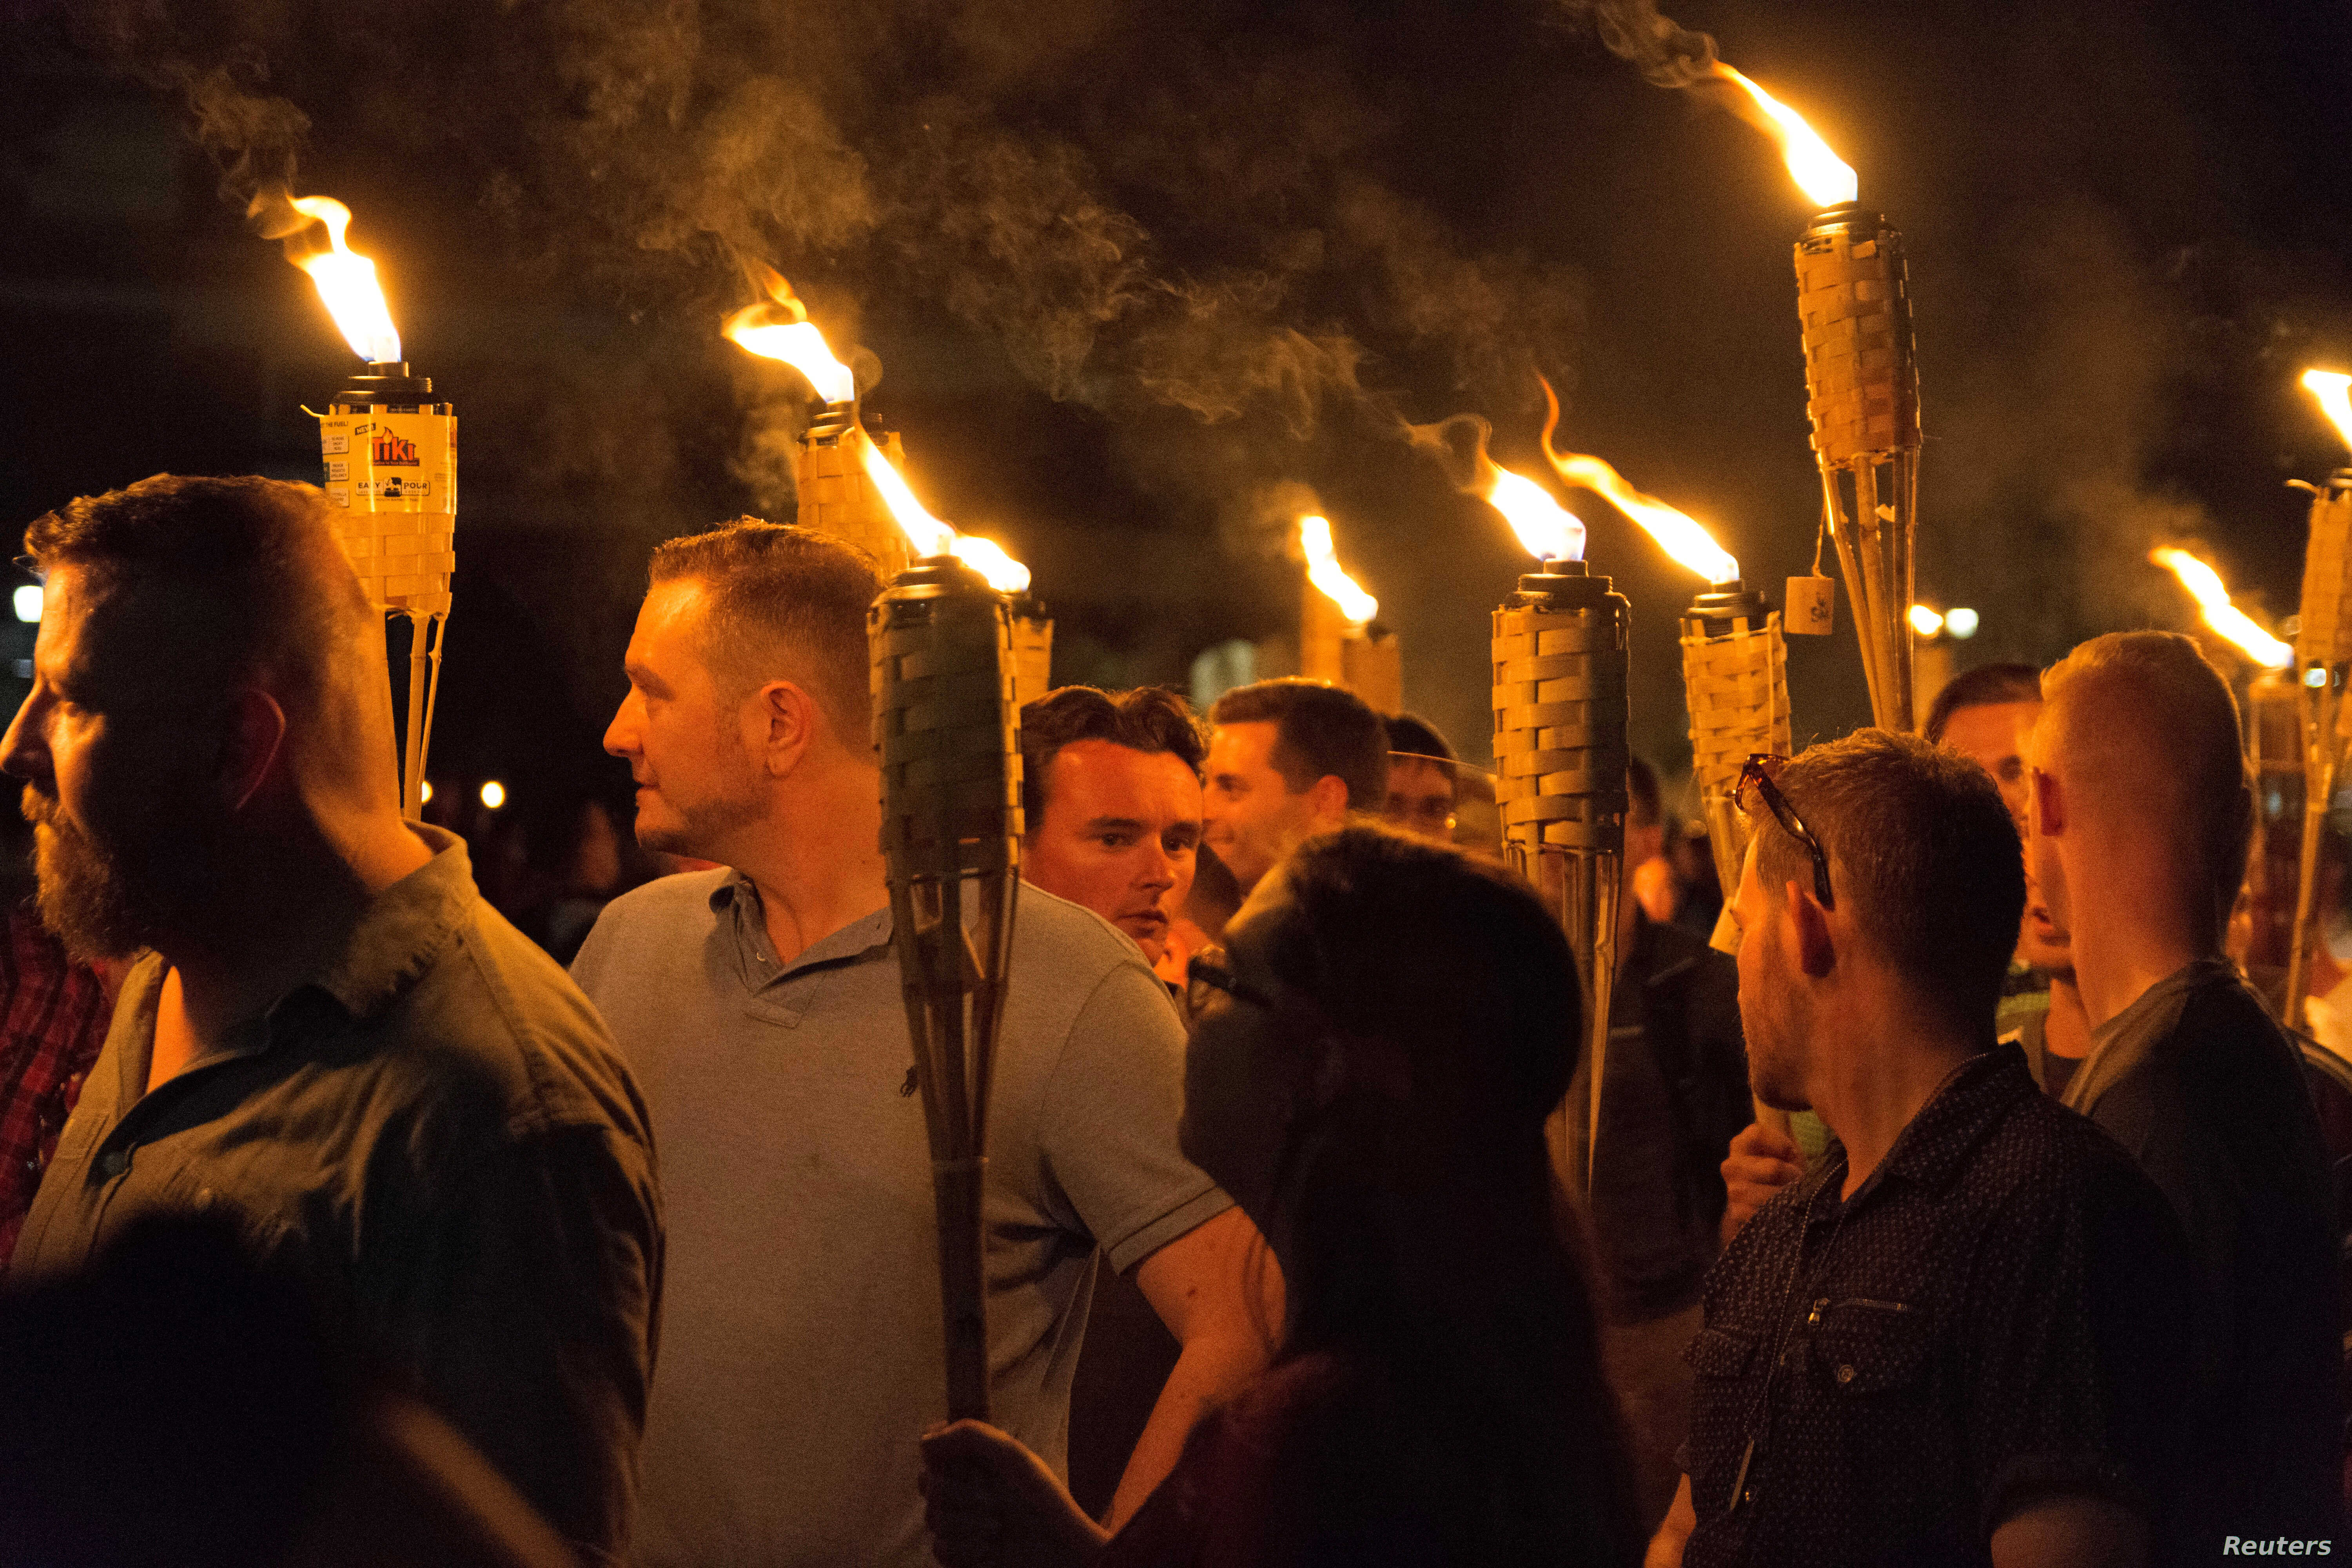 """White supremacists carry torches on the grounds of the University of Virginia, on the eve of a planned """"Unite the Right"""" rally in Charlottesville, Virginia, Aug. 11, 2017."""